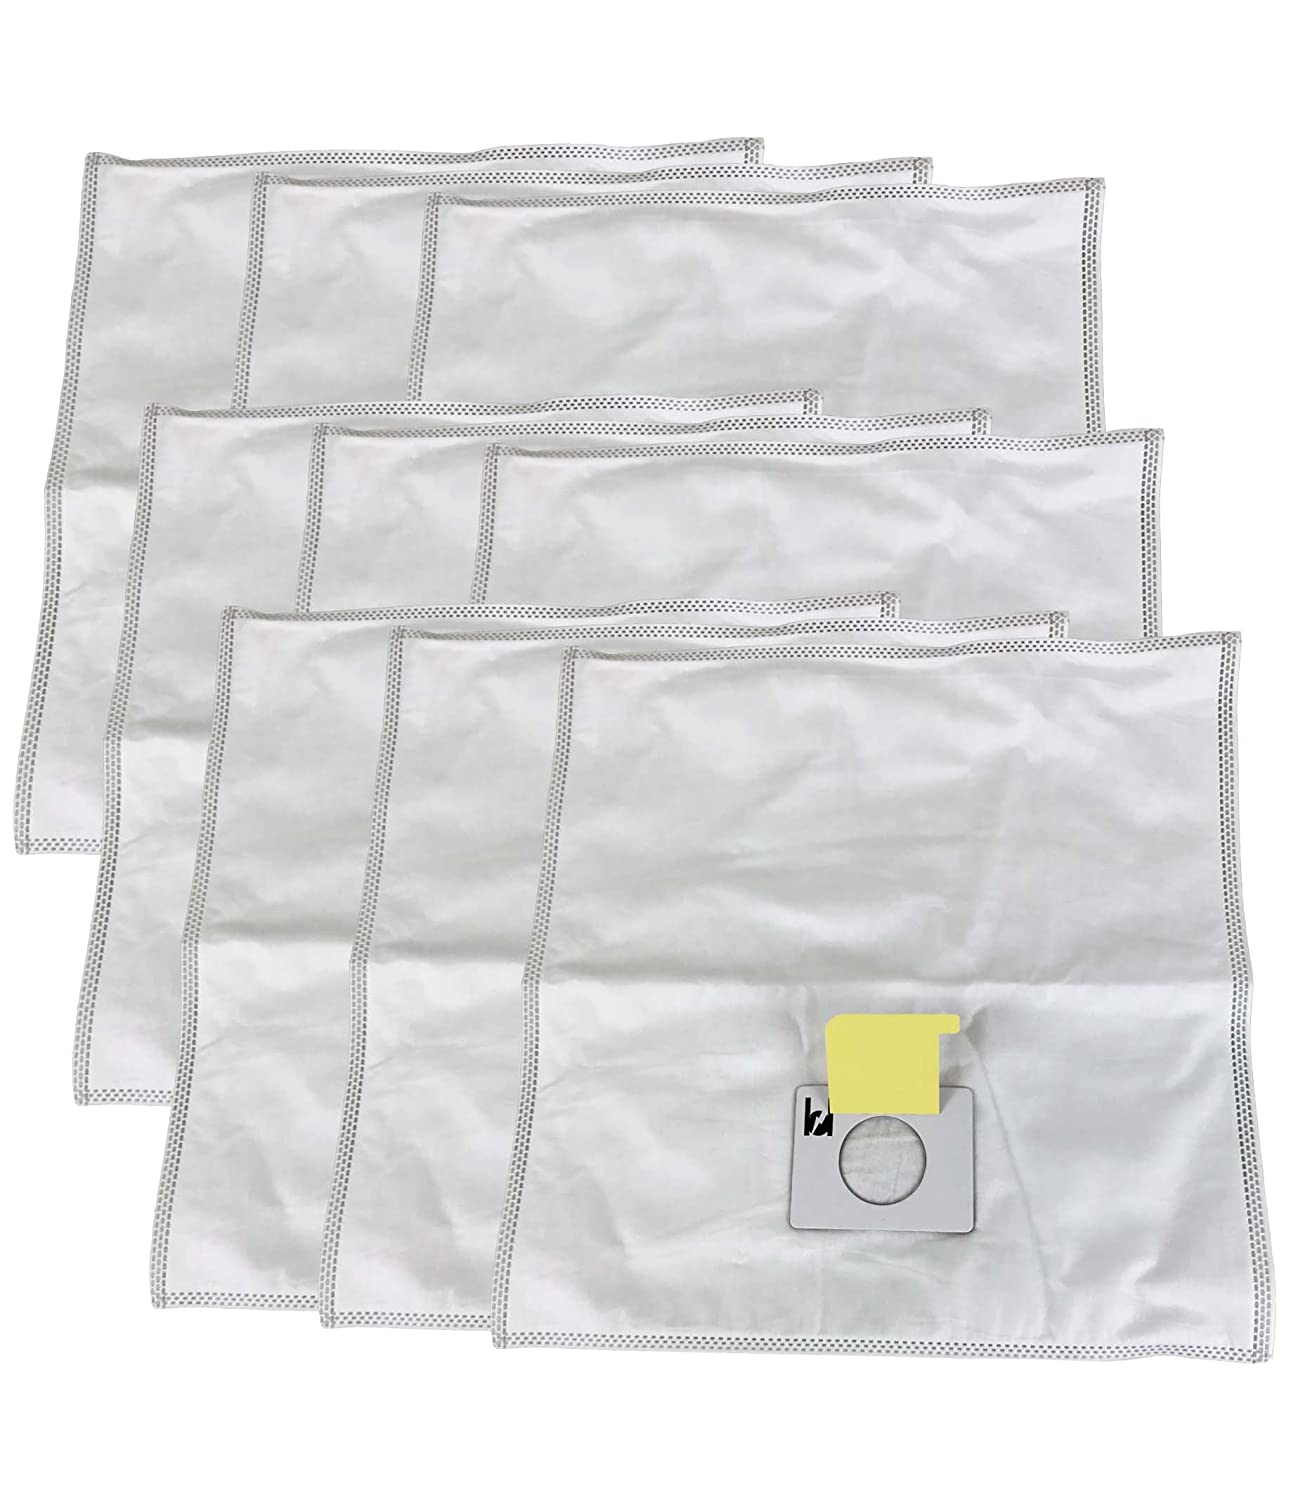 9 Kenmore Type C 5055 Cloth Allergen Bags Designed To Fit Kenmore Canister Type C, 5055, 50557, 50558 Kenmore Type Q, Panasonic Type C-5 & C-19 (MC-V295H), Compare to Part # 433934, Designed & Engineered By Crucial Vacuum